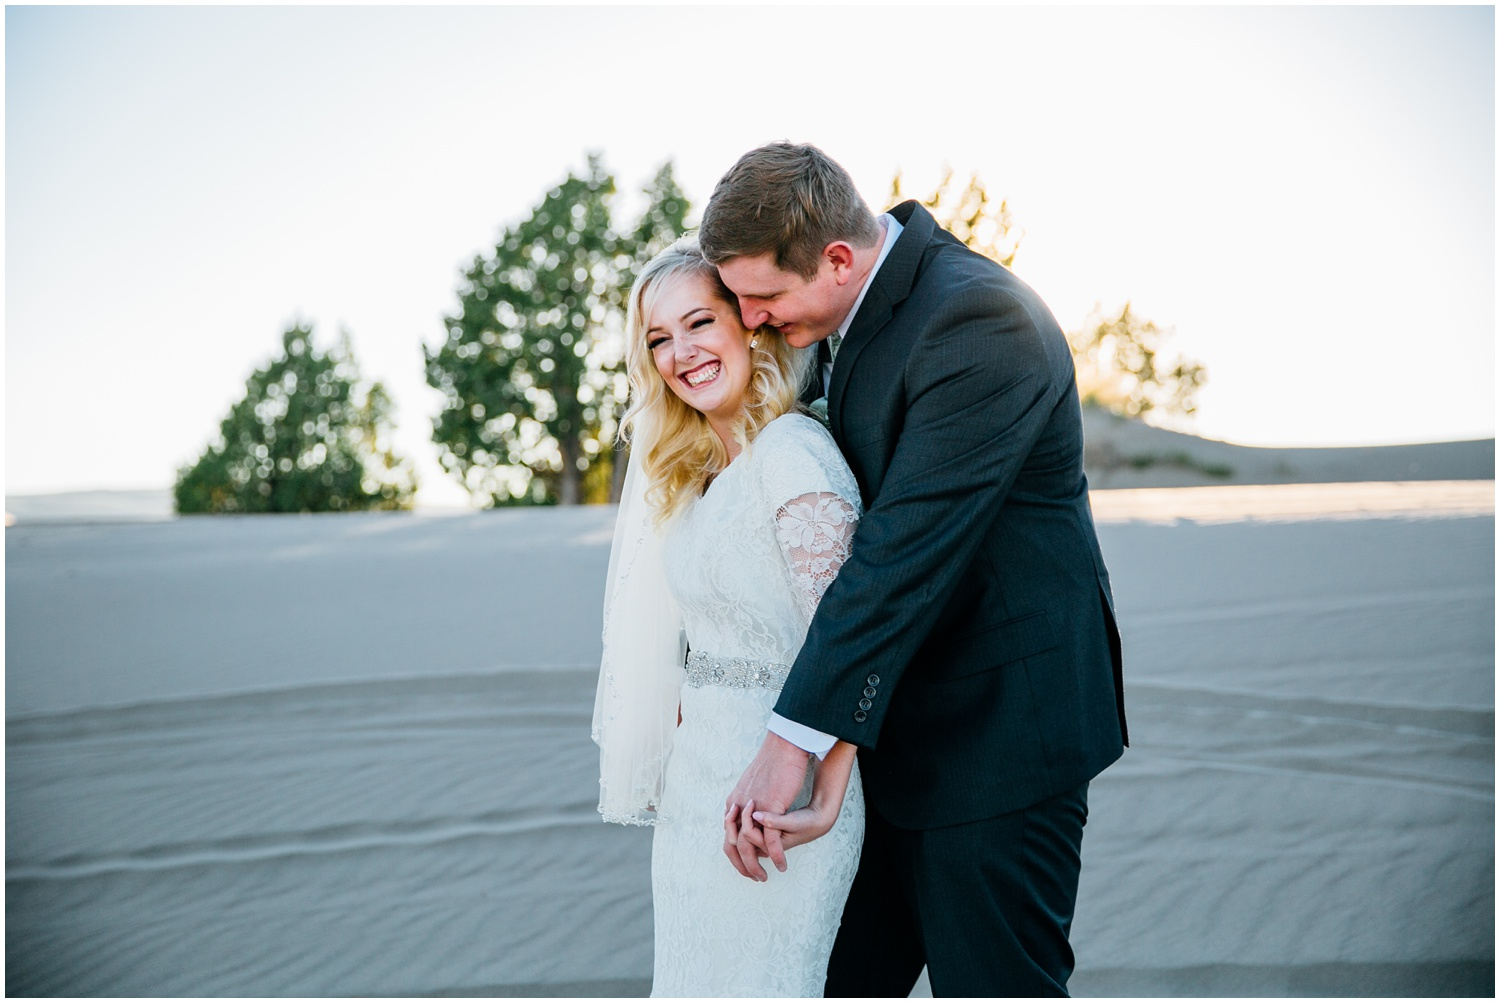 saint-anthony-sand-dunes-bridals-idaho-engagements-colorado-wyoming-wedding-photographer_0727.jpg